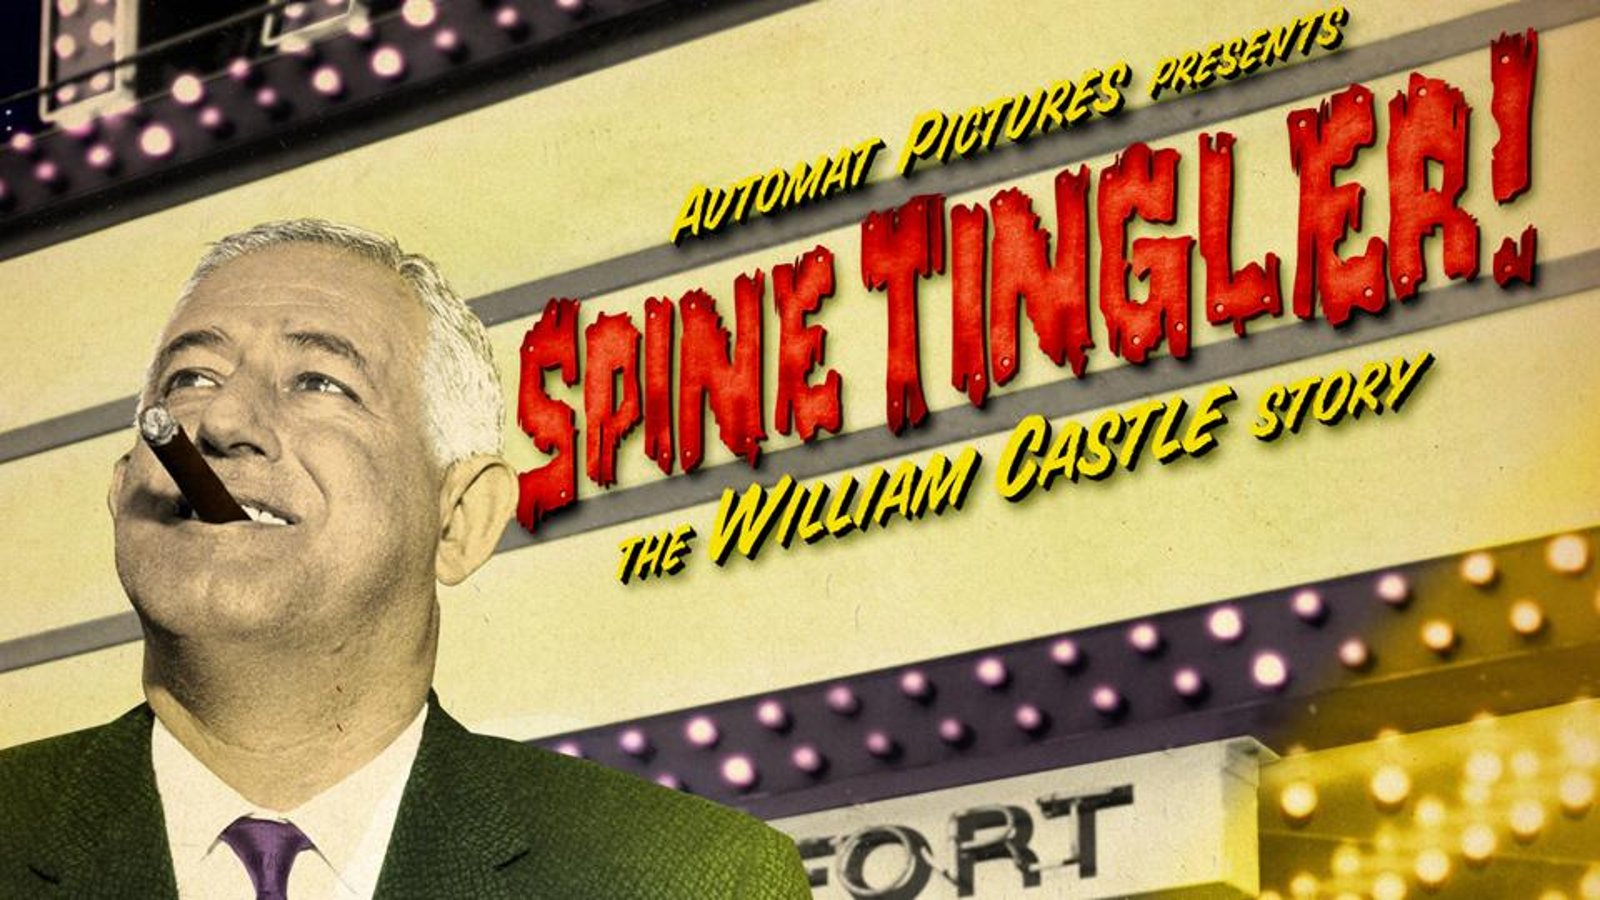 Spine Tingler! The William Castle Story - Filmmaker William Castle and his Outrageous Audience Participation Gimmicks